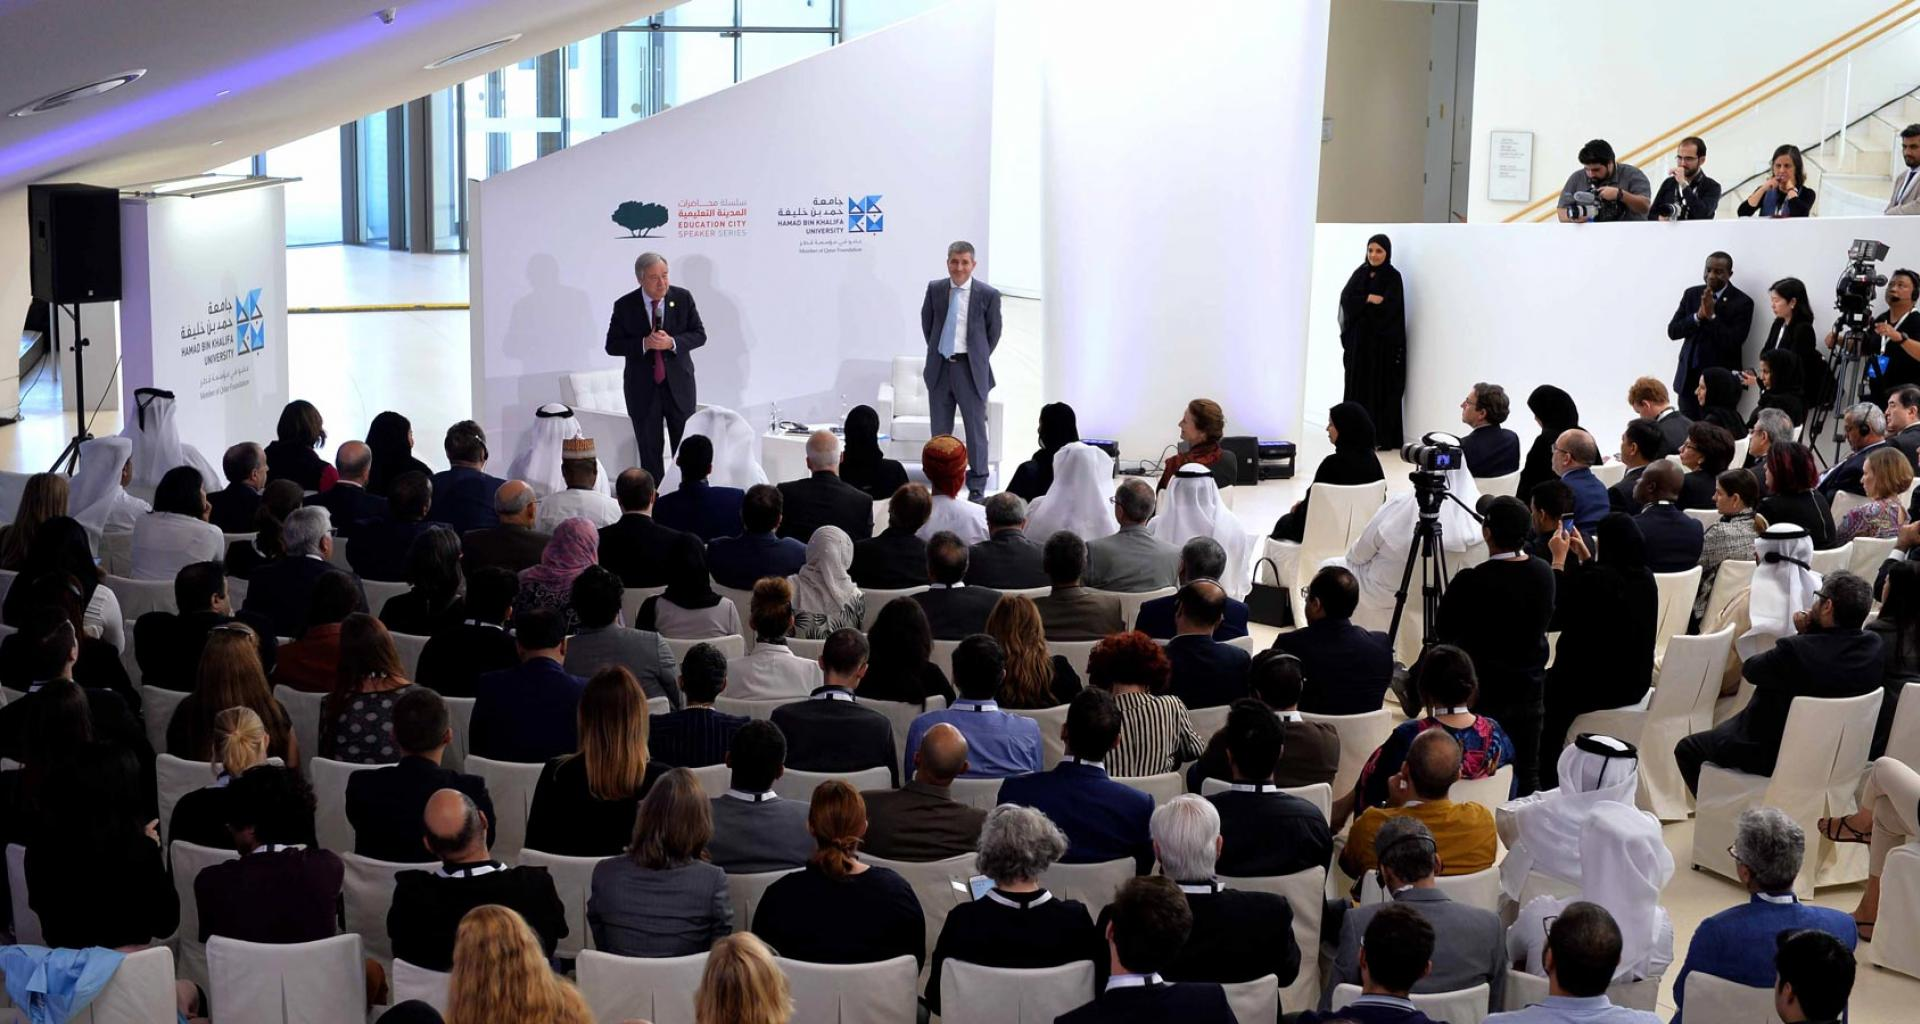 HH Sheikha Moza bint Nasser Attends Lecture by UN Secretary-General Hosted by HBKU